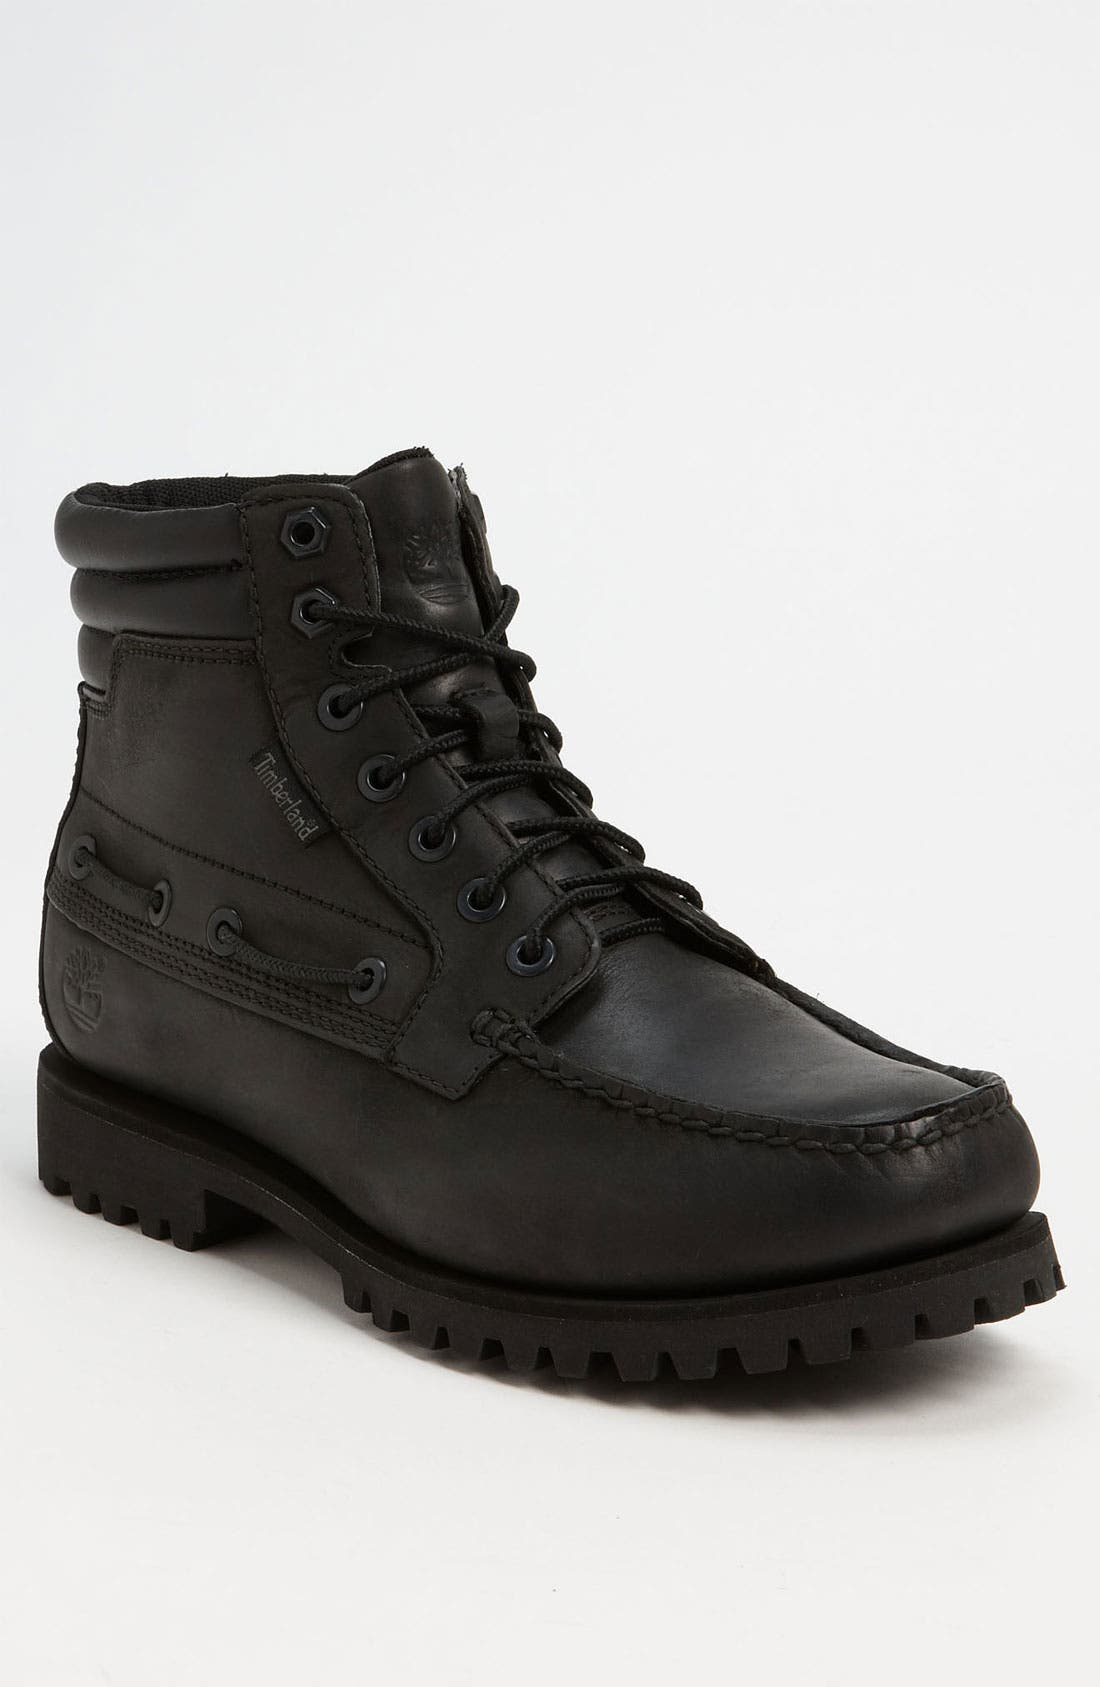 OAKWELL 7 EYE MOC TOE BOOT, Main, color, 001